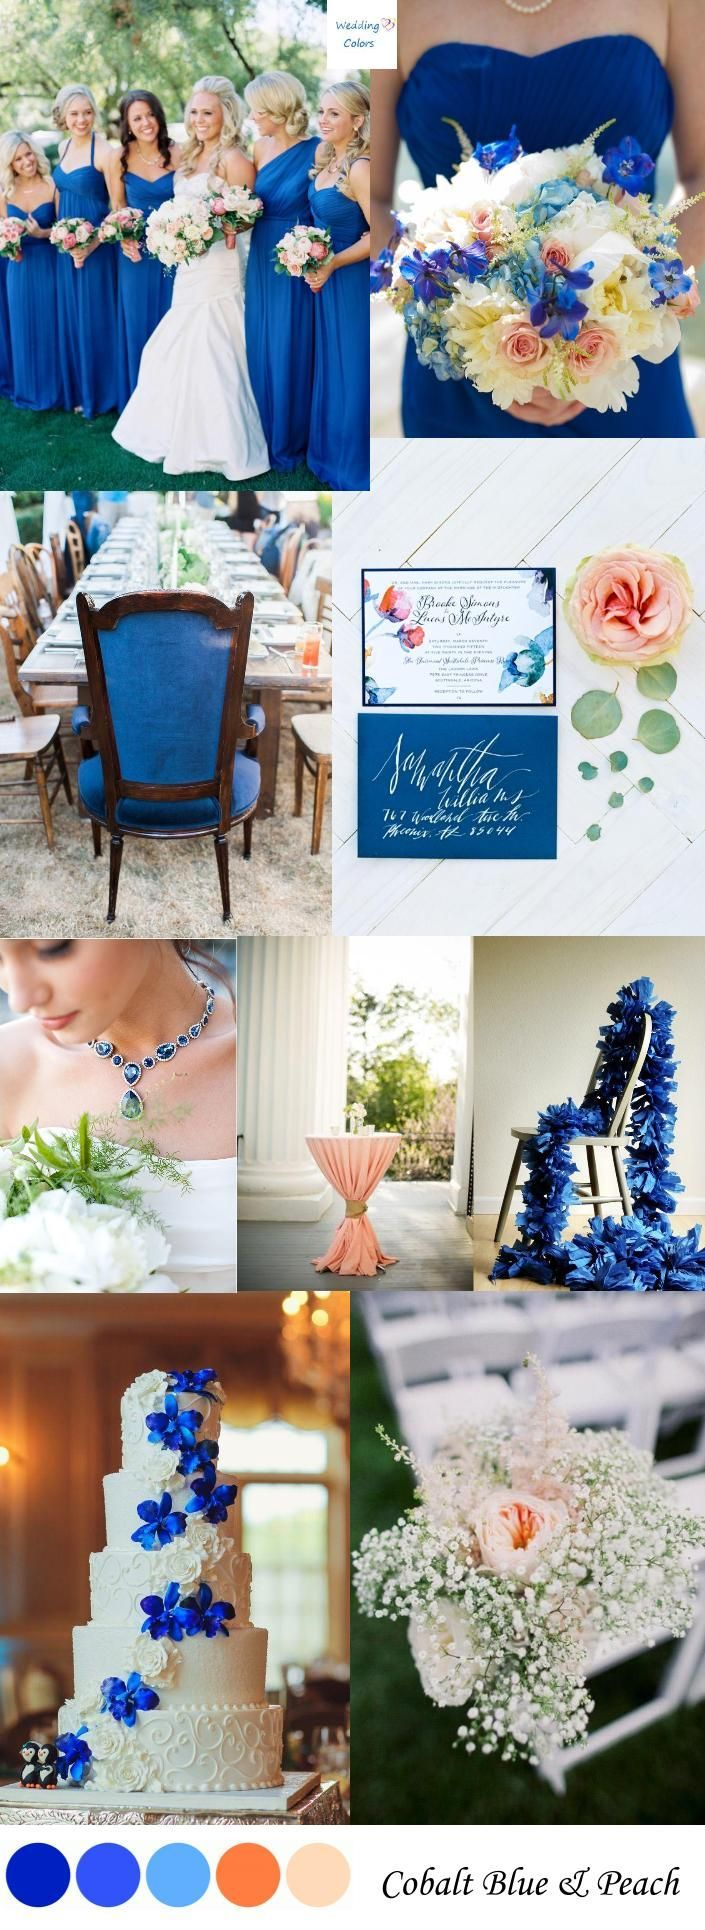 110 best Wedding Color Palettes images on Pinterest | Color palettes ...